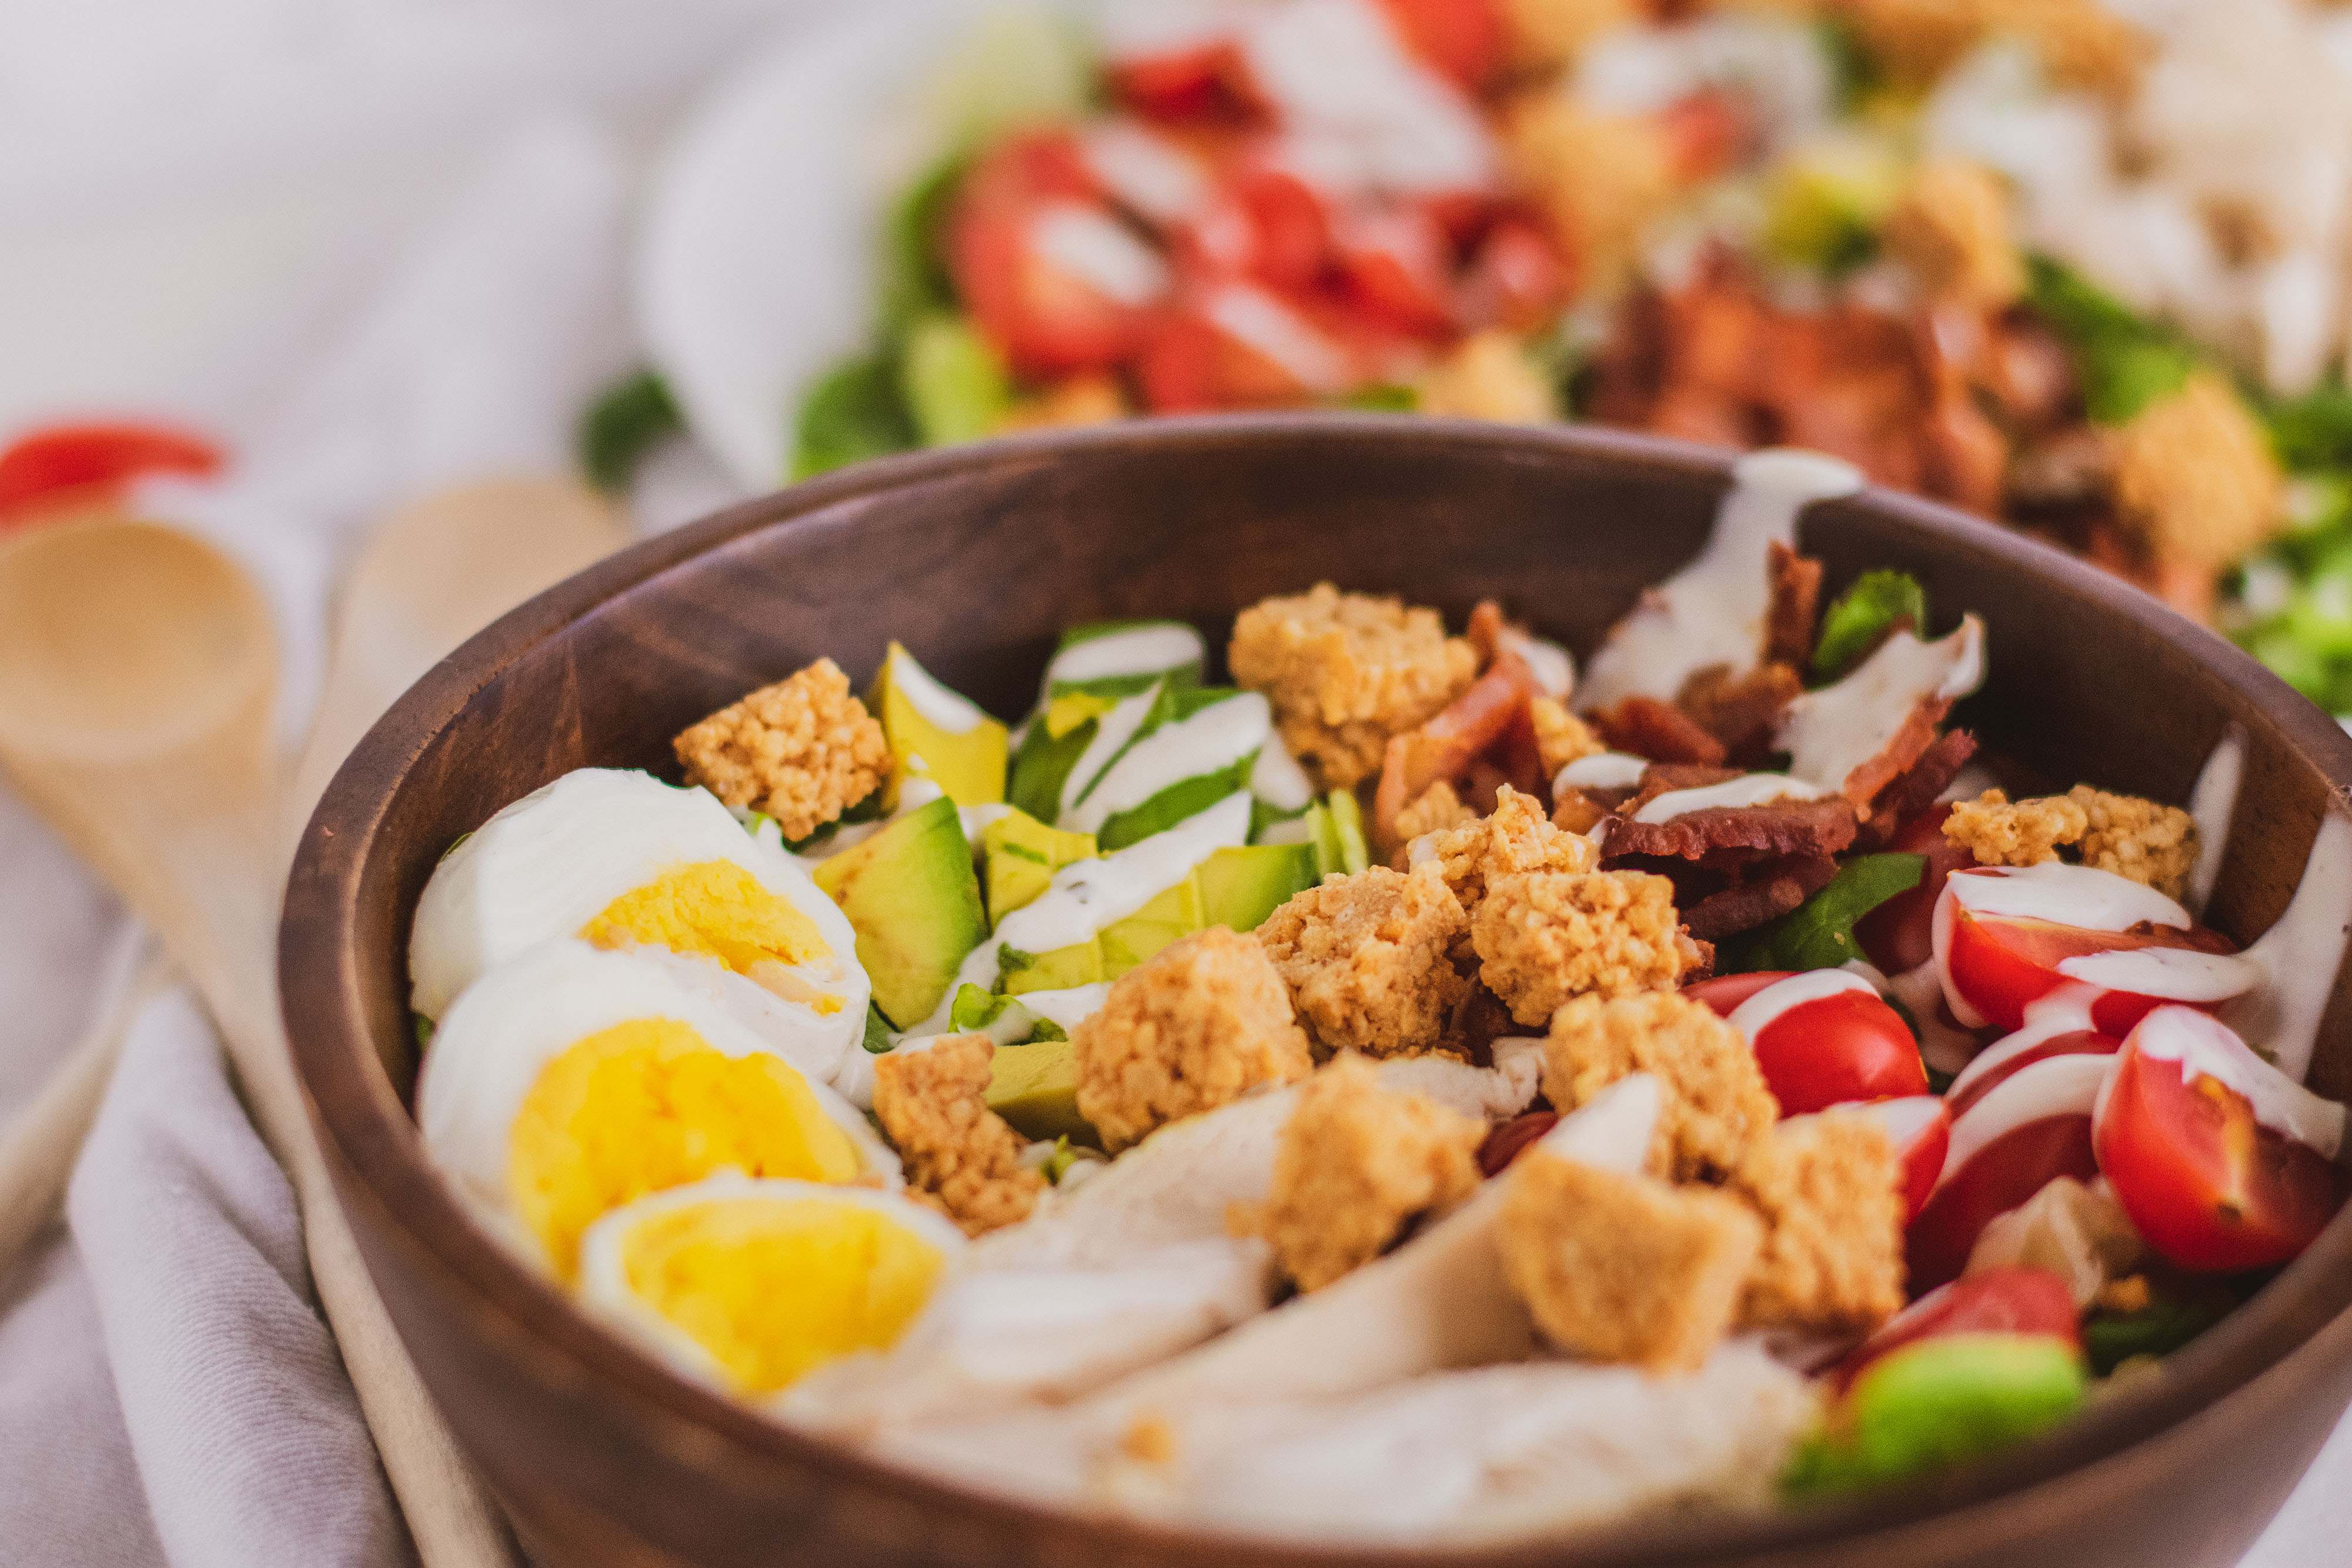 Keto Cobb Salad with sliced boiled egg, sliced chicken, avocado and ranch on top in a bowl with a fork on the side on a white surface.